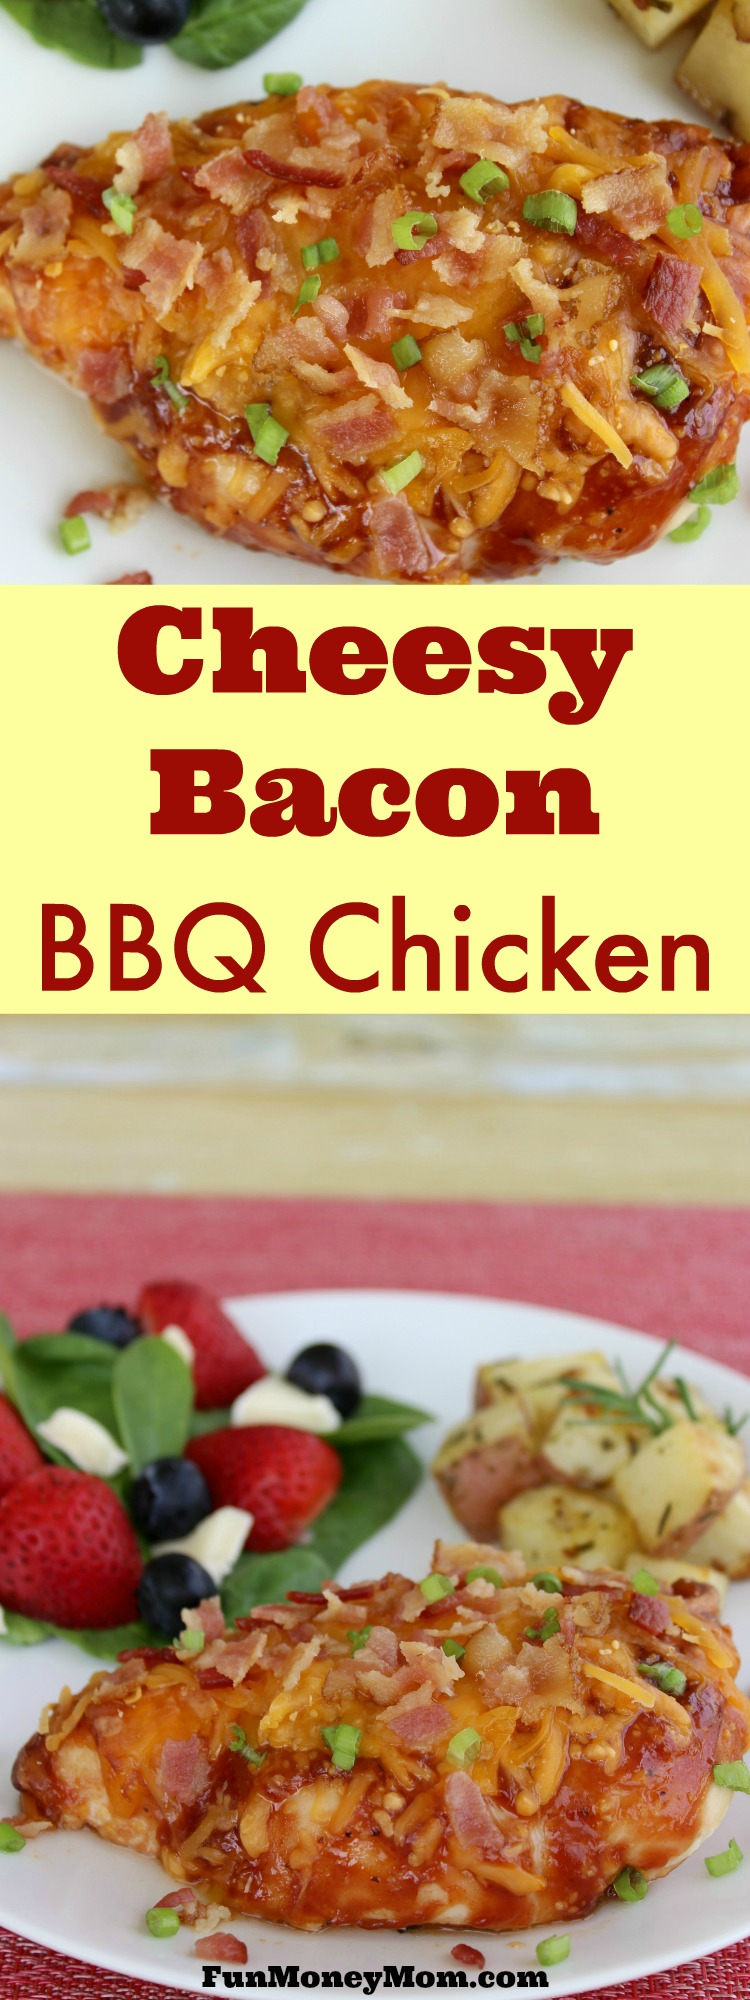 This Cheesy Bacon BBQ Chicken is going to quickly become your family's favorite dinner recipe!